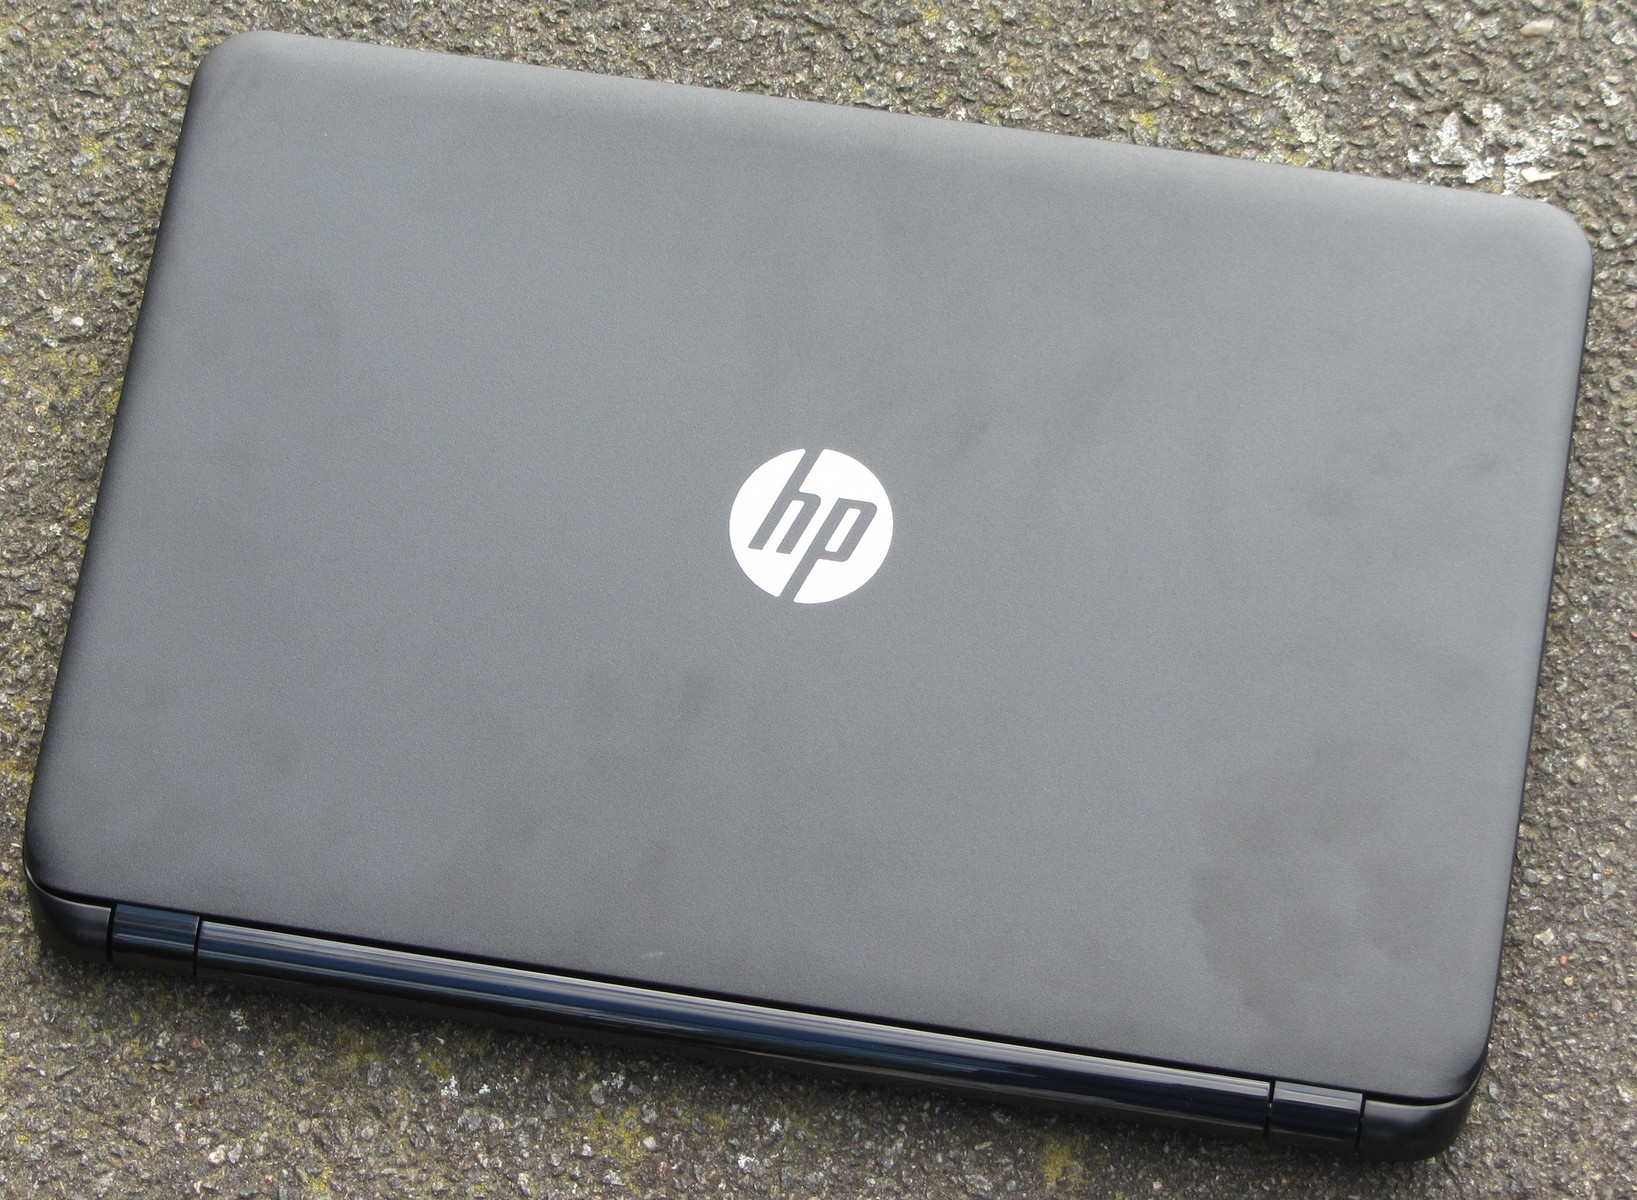 Hp notebook x64-based pc - The Lid S Back Is Comprised Of Roughened Plastic